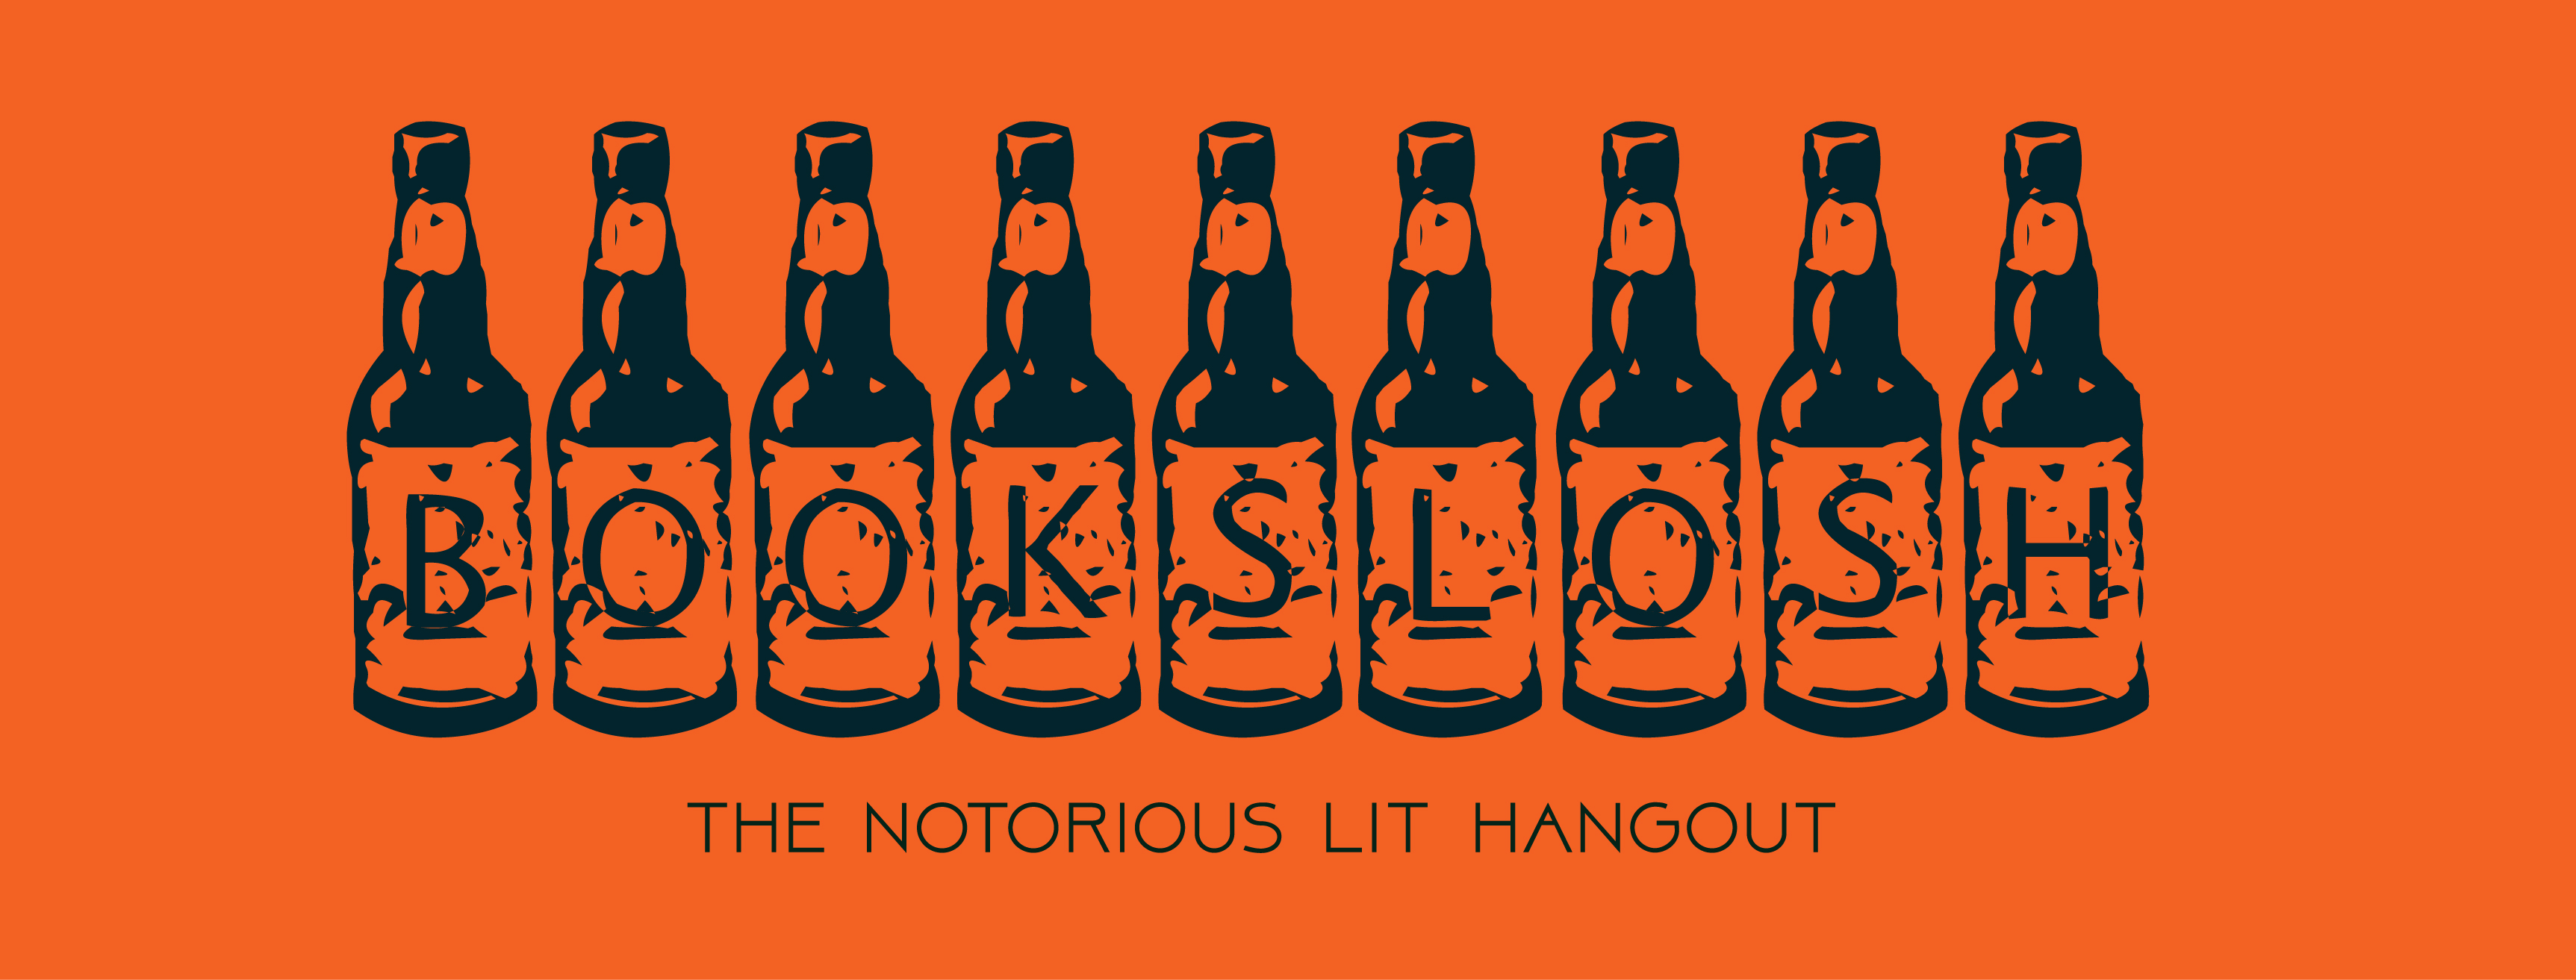 Bookslosh:The Notorious Lit Hangout